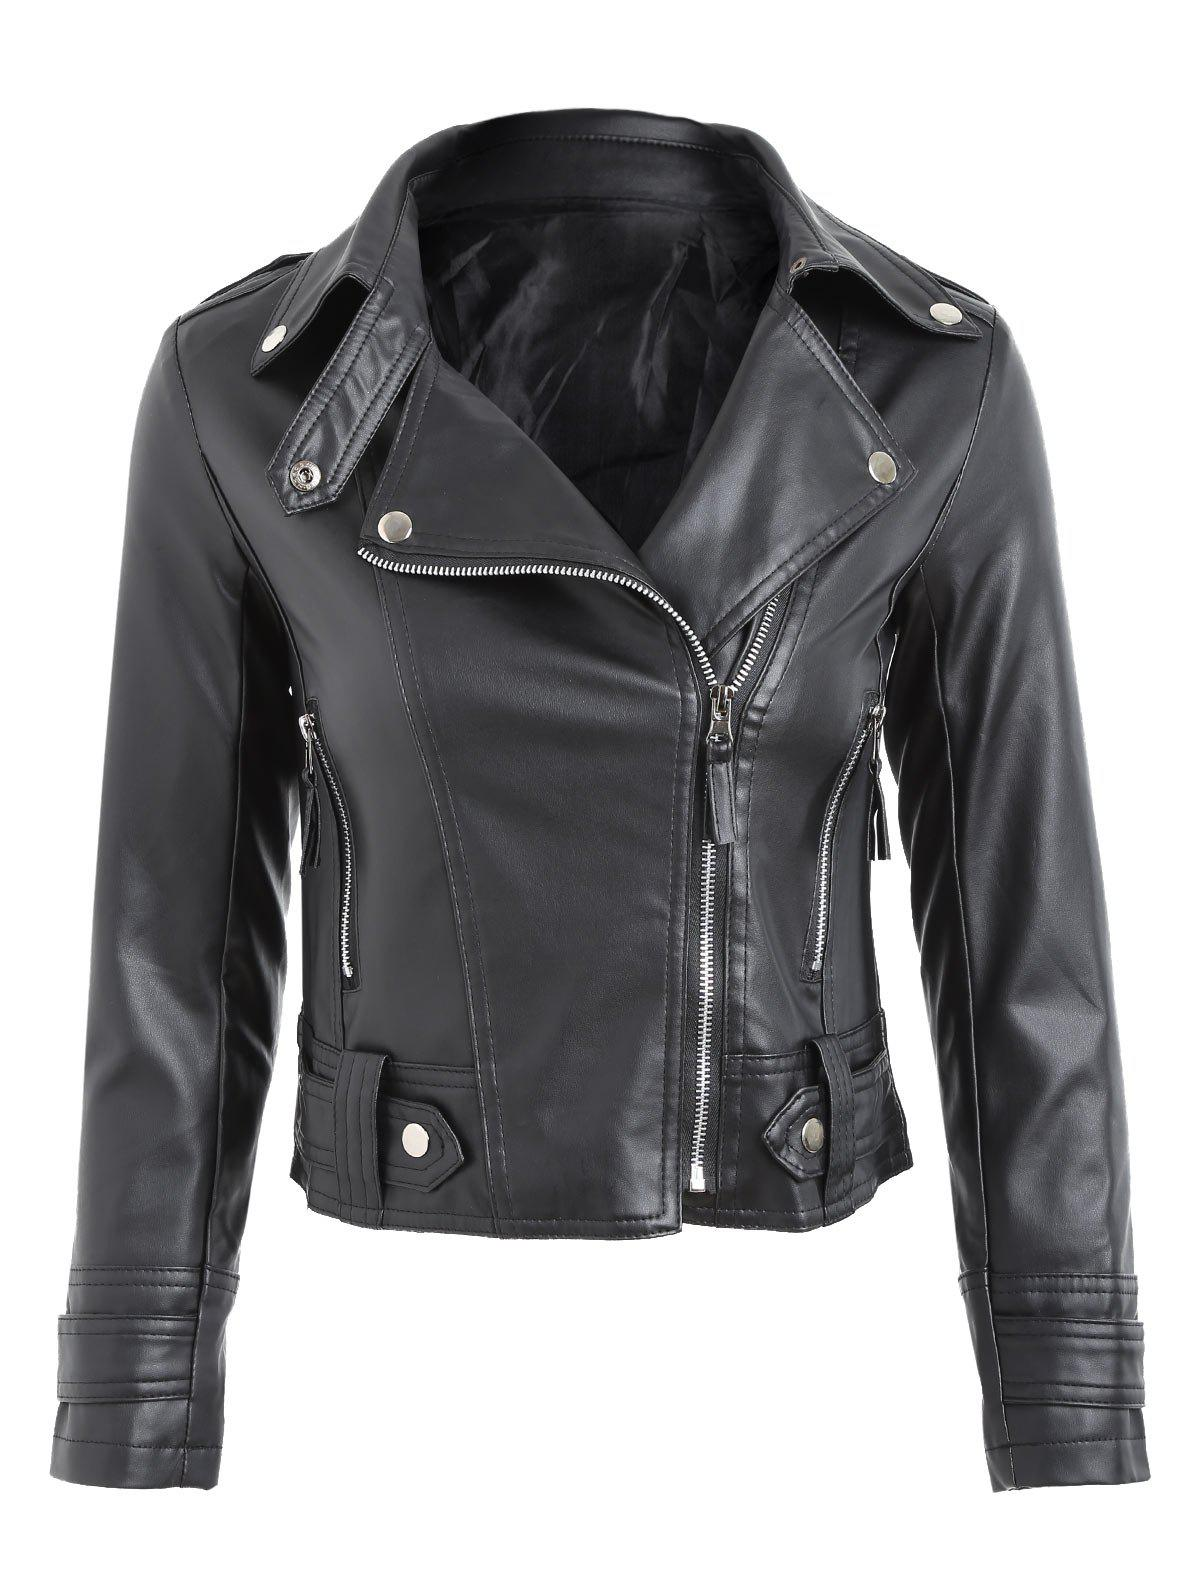 Discount Faux Leather Biker Jacket